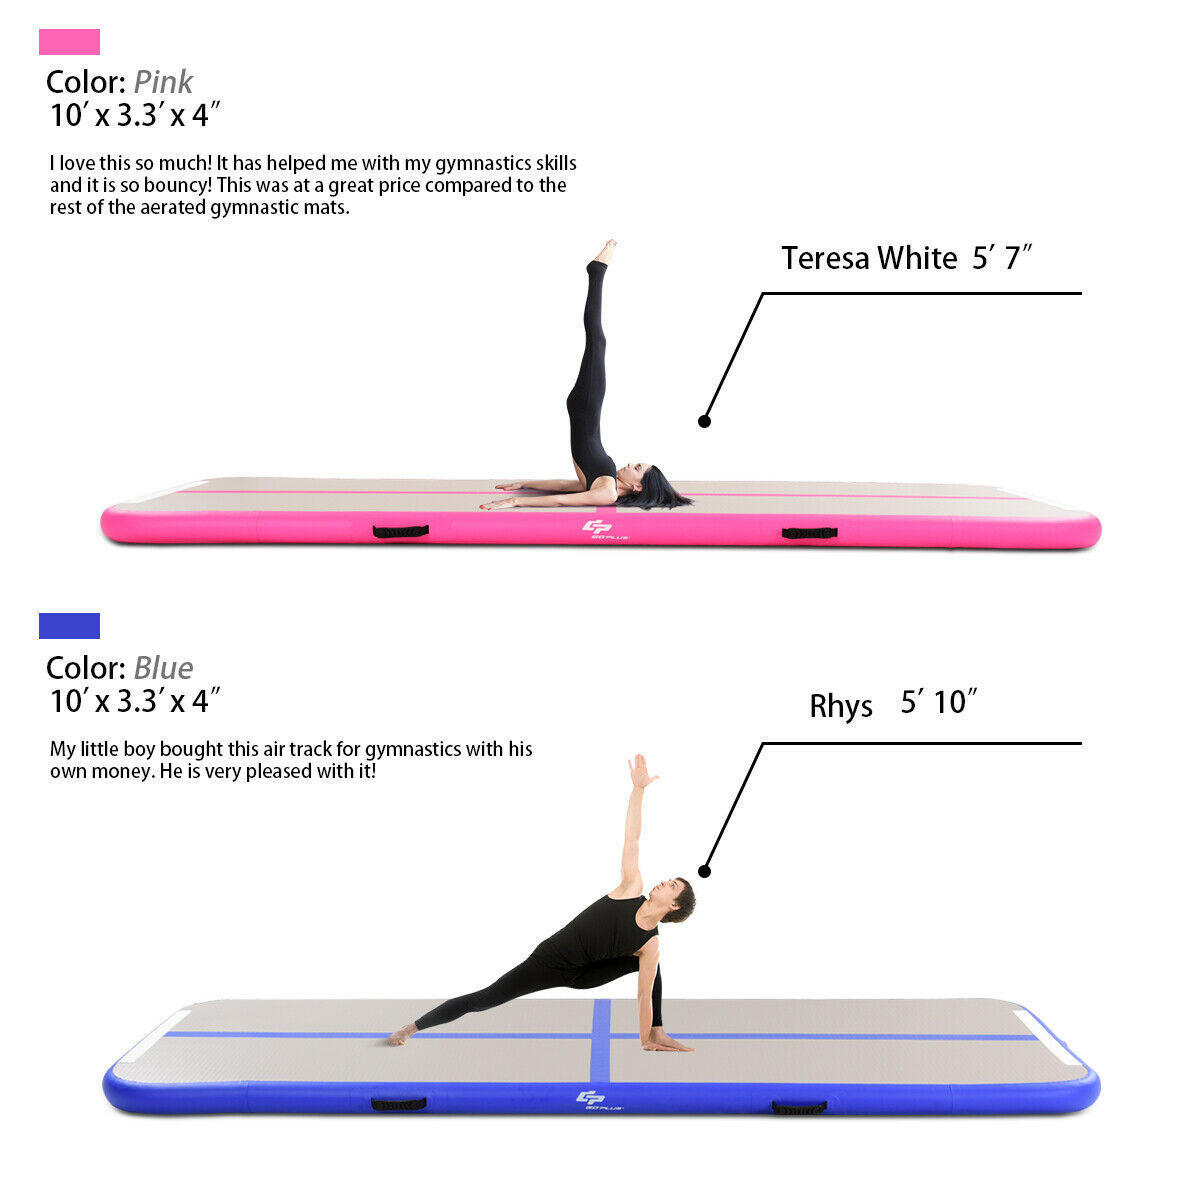 costway tapis gonflable de gymnastique